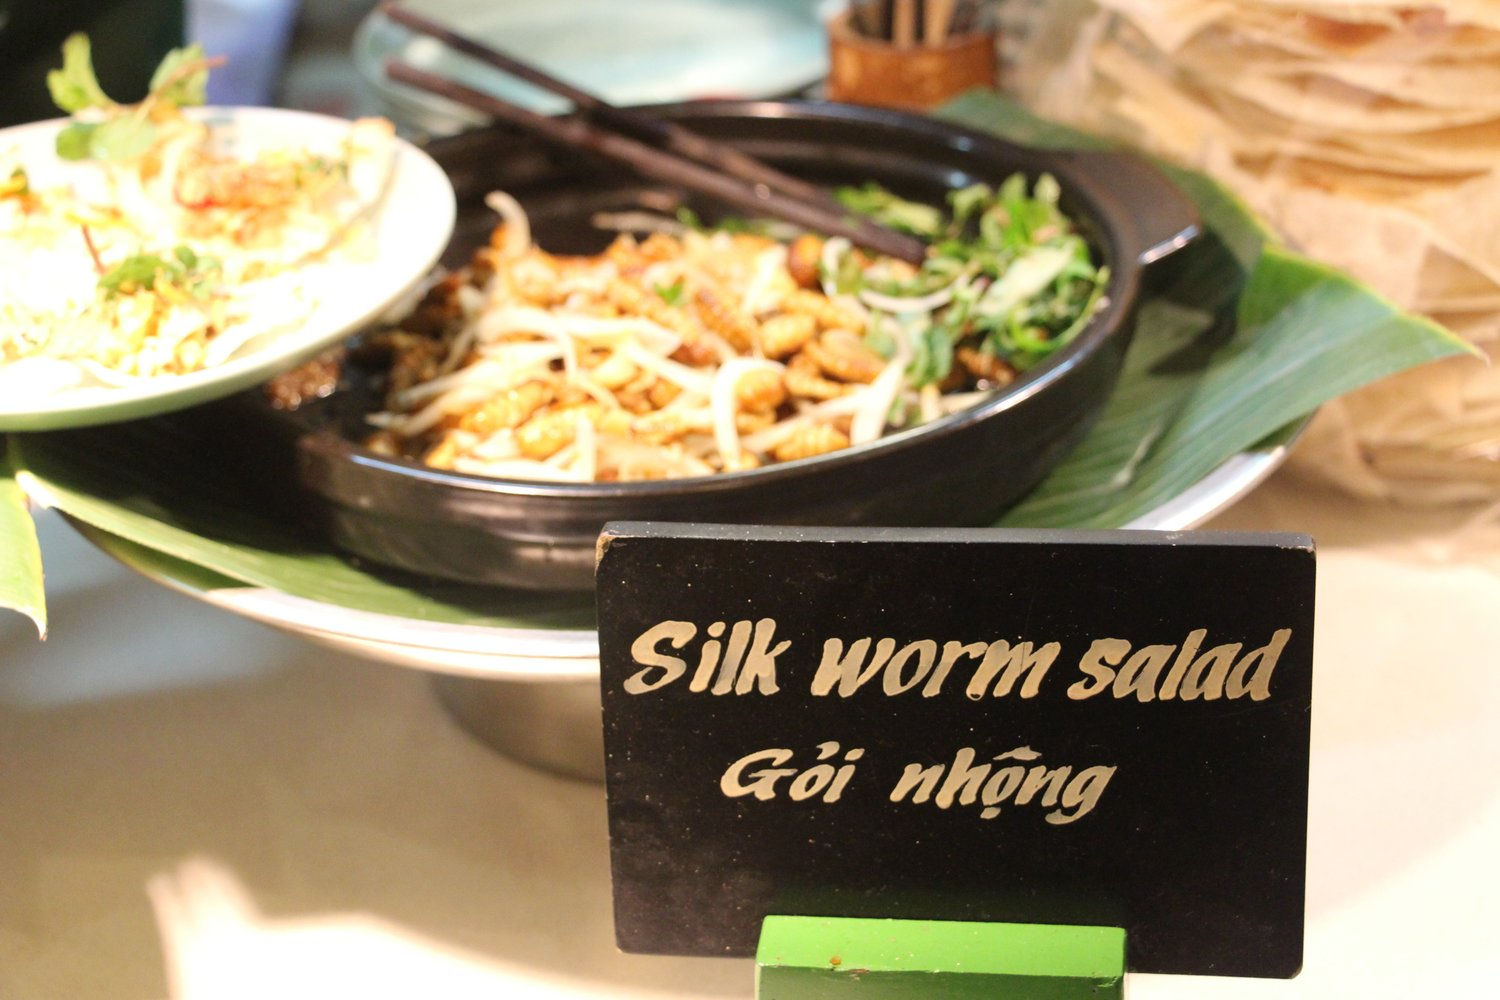 Silk Worm Salad